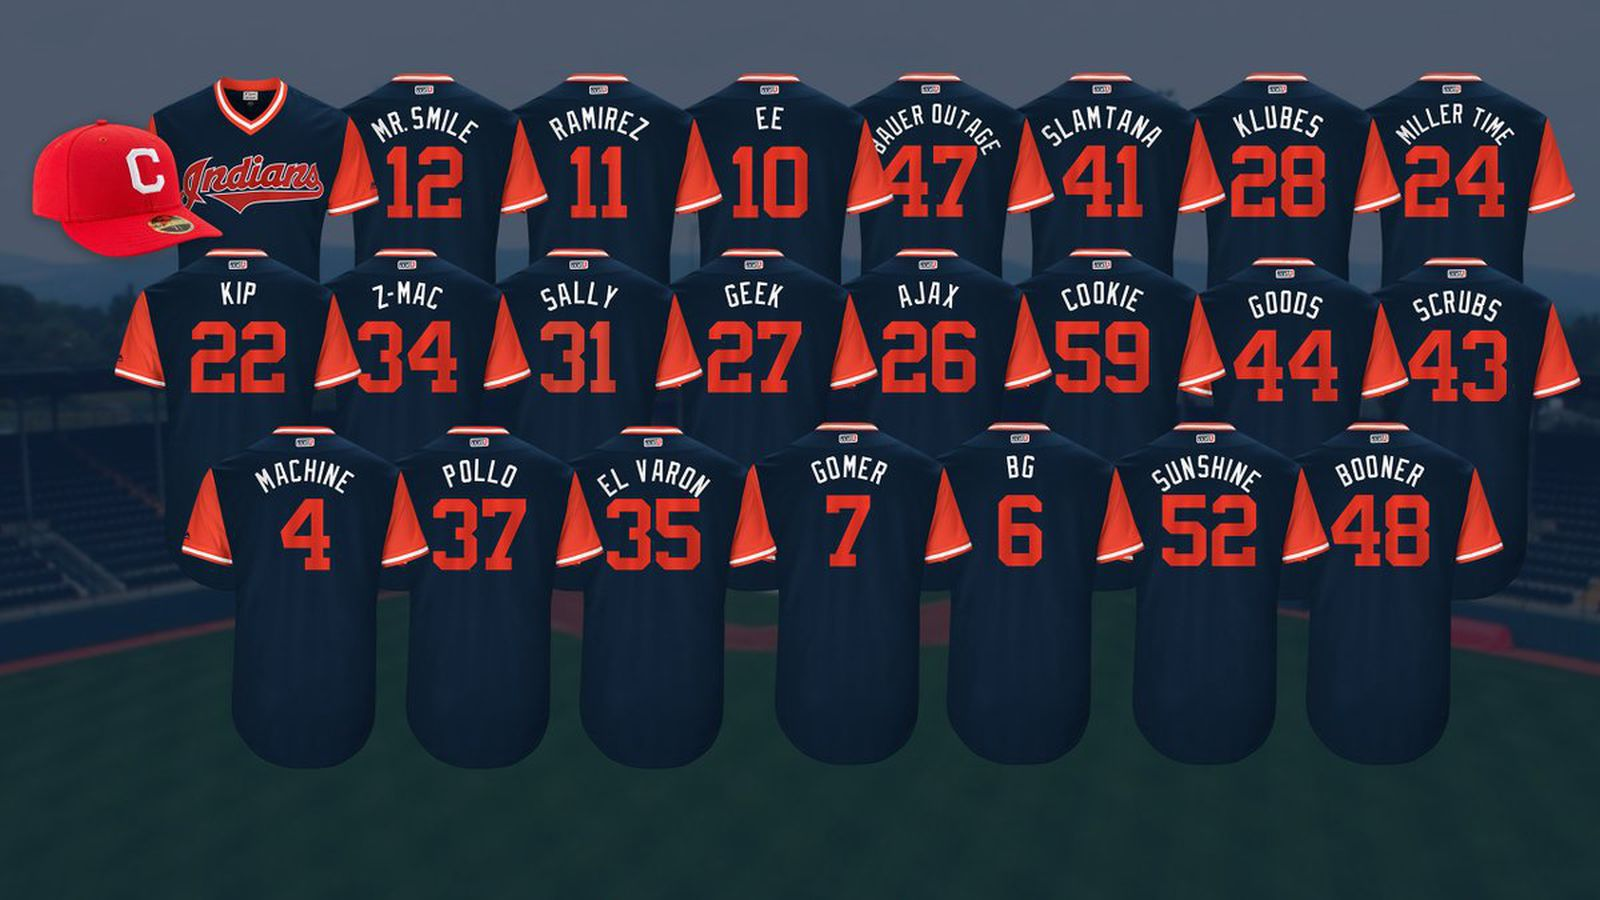 finest selection 56966 e3b5f Grading the Indians' Player's Weekend nickname choices ...